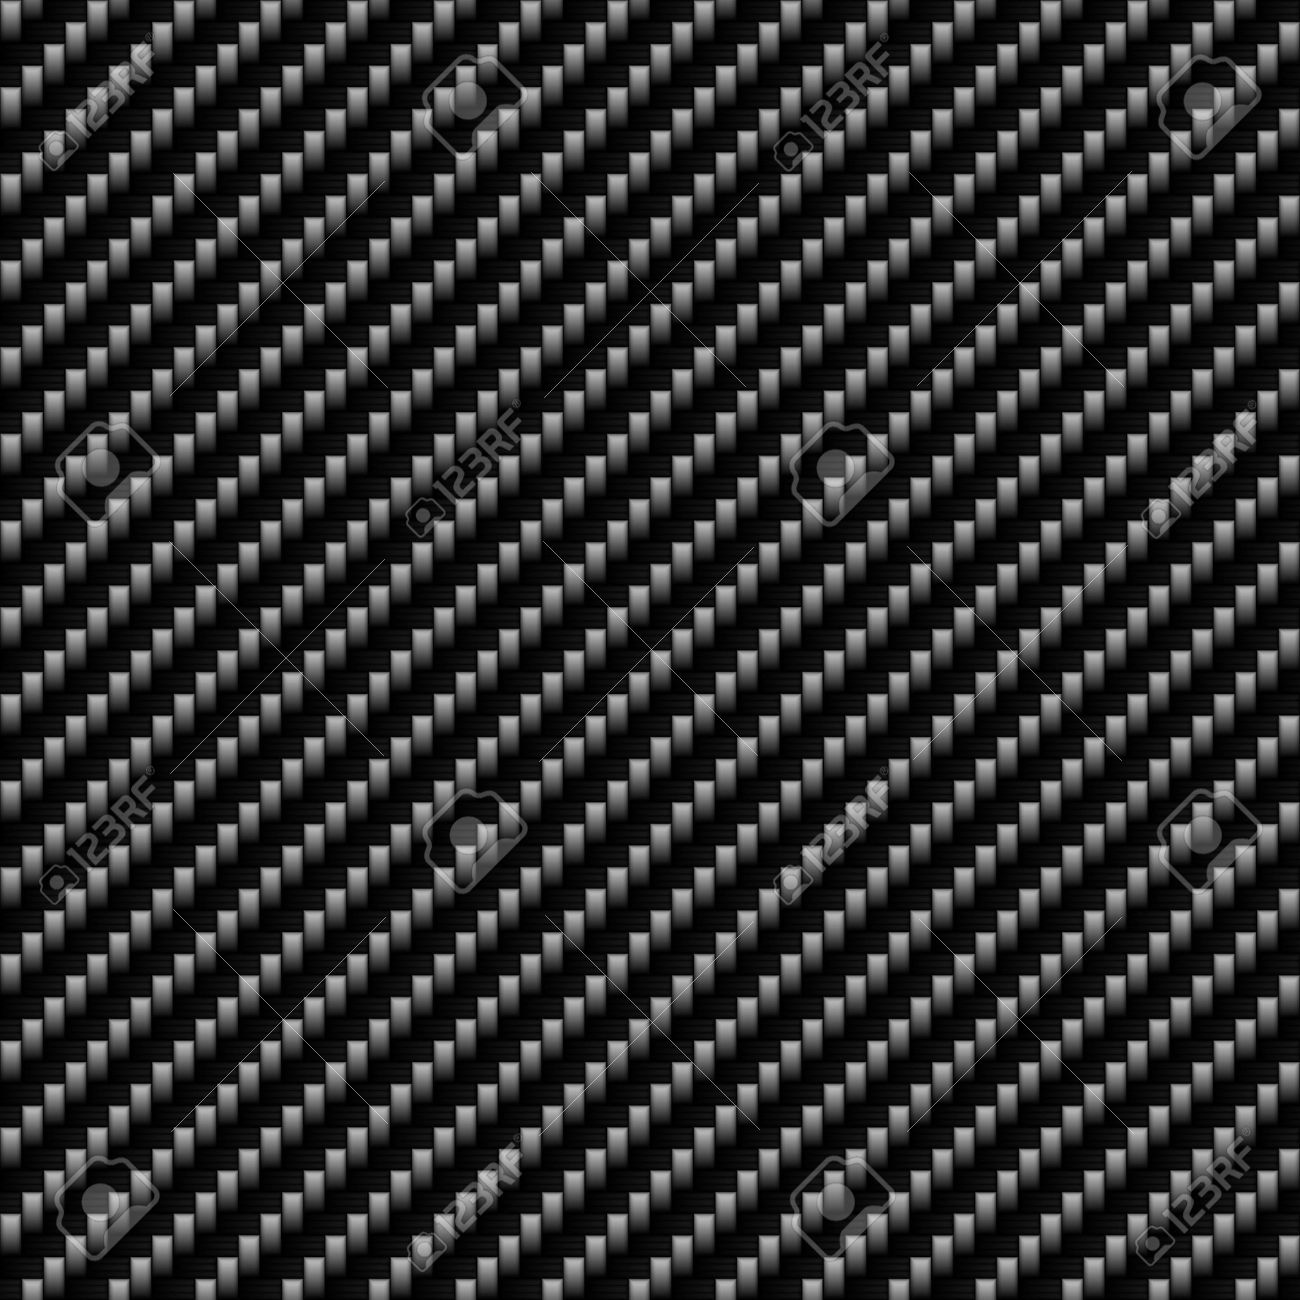 Backgrounds For Colored Carbon Fiber Backgrounds | www ...